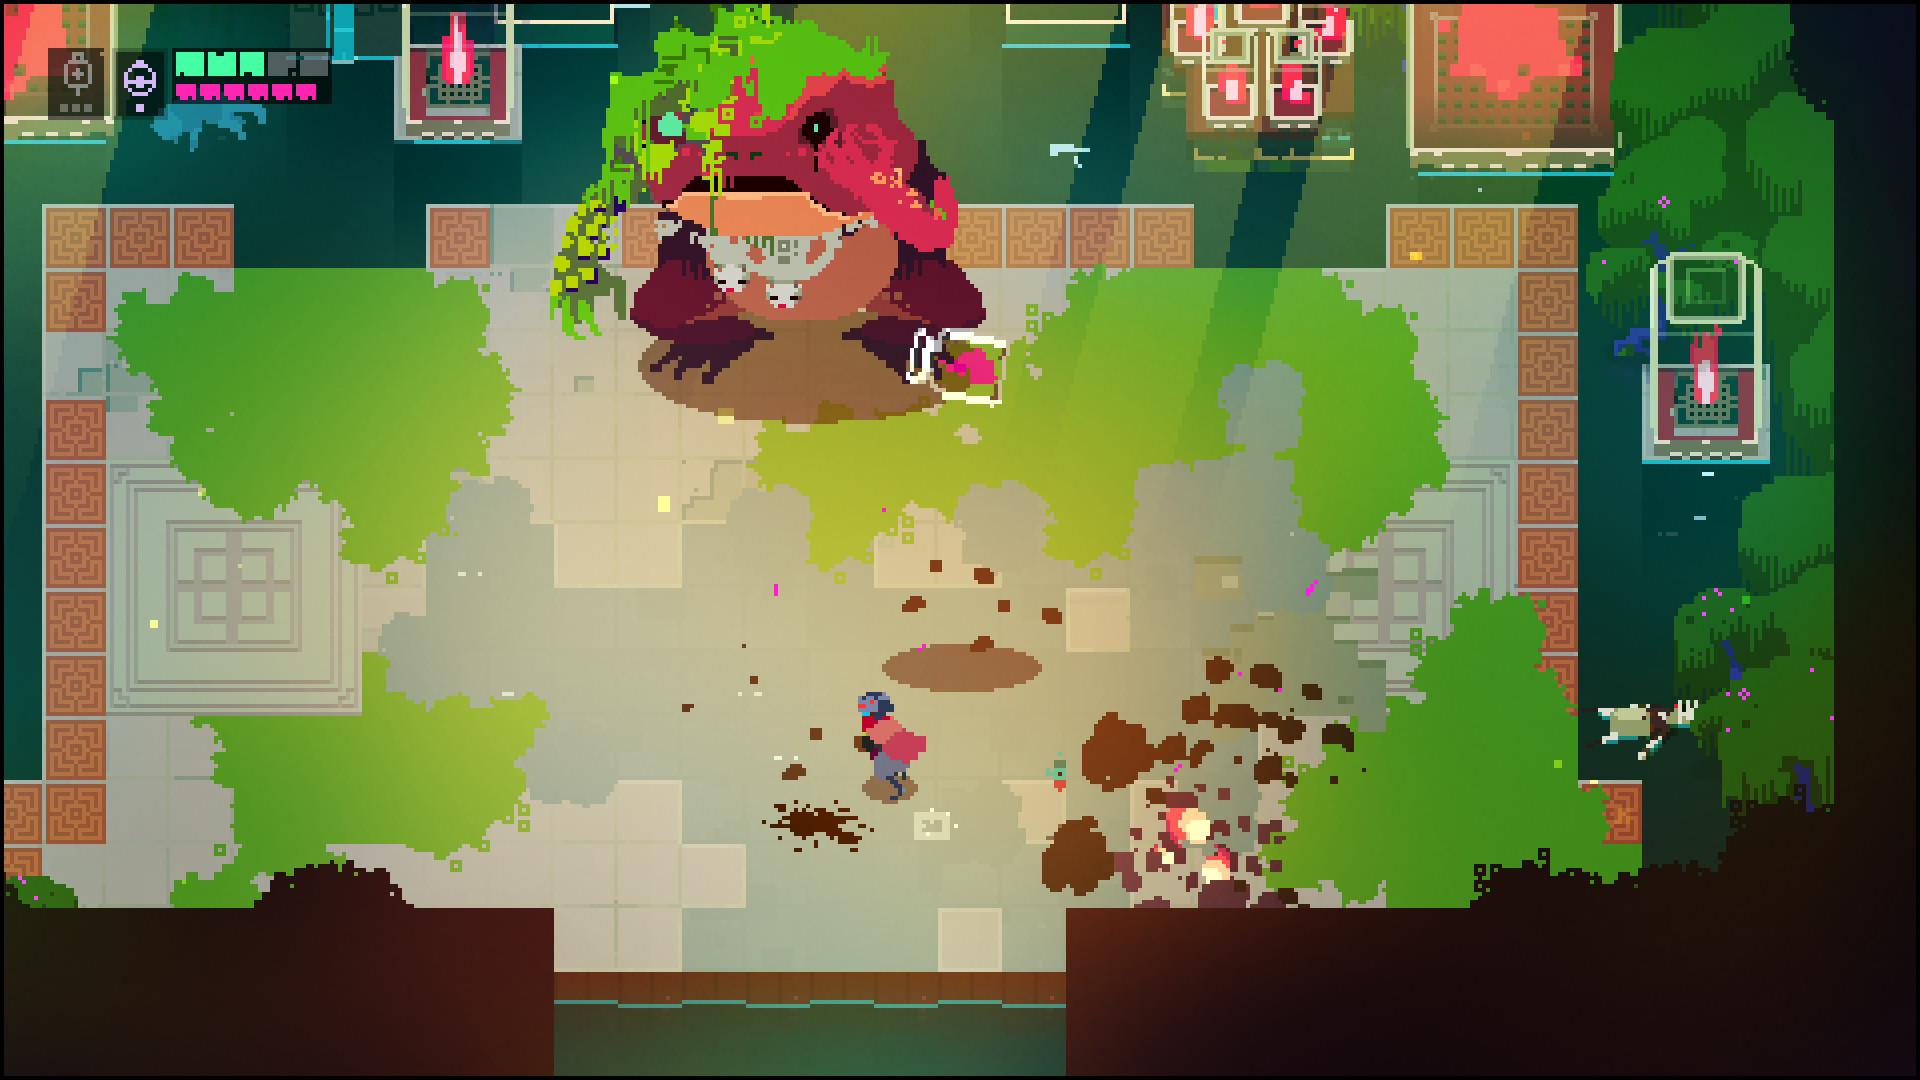 Hyper Light Drifter's pixel graphic